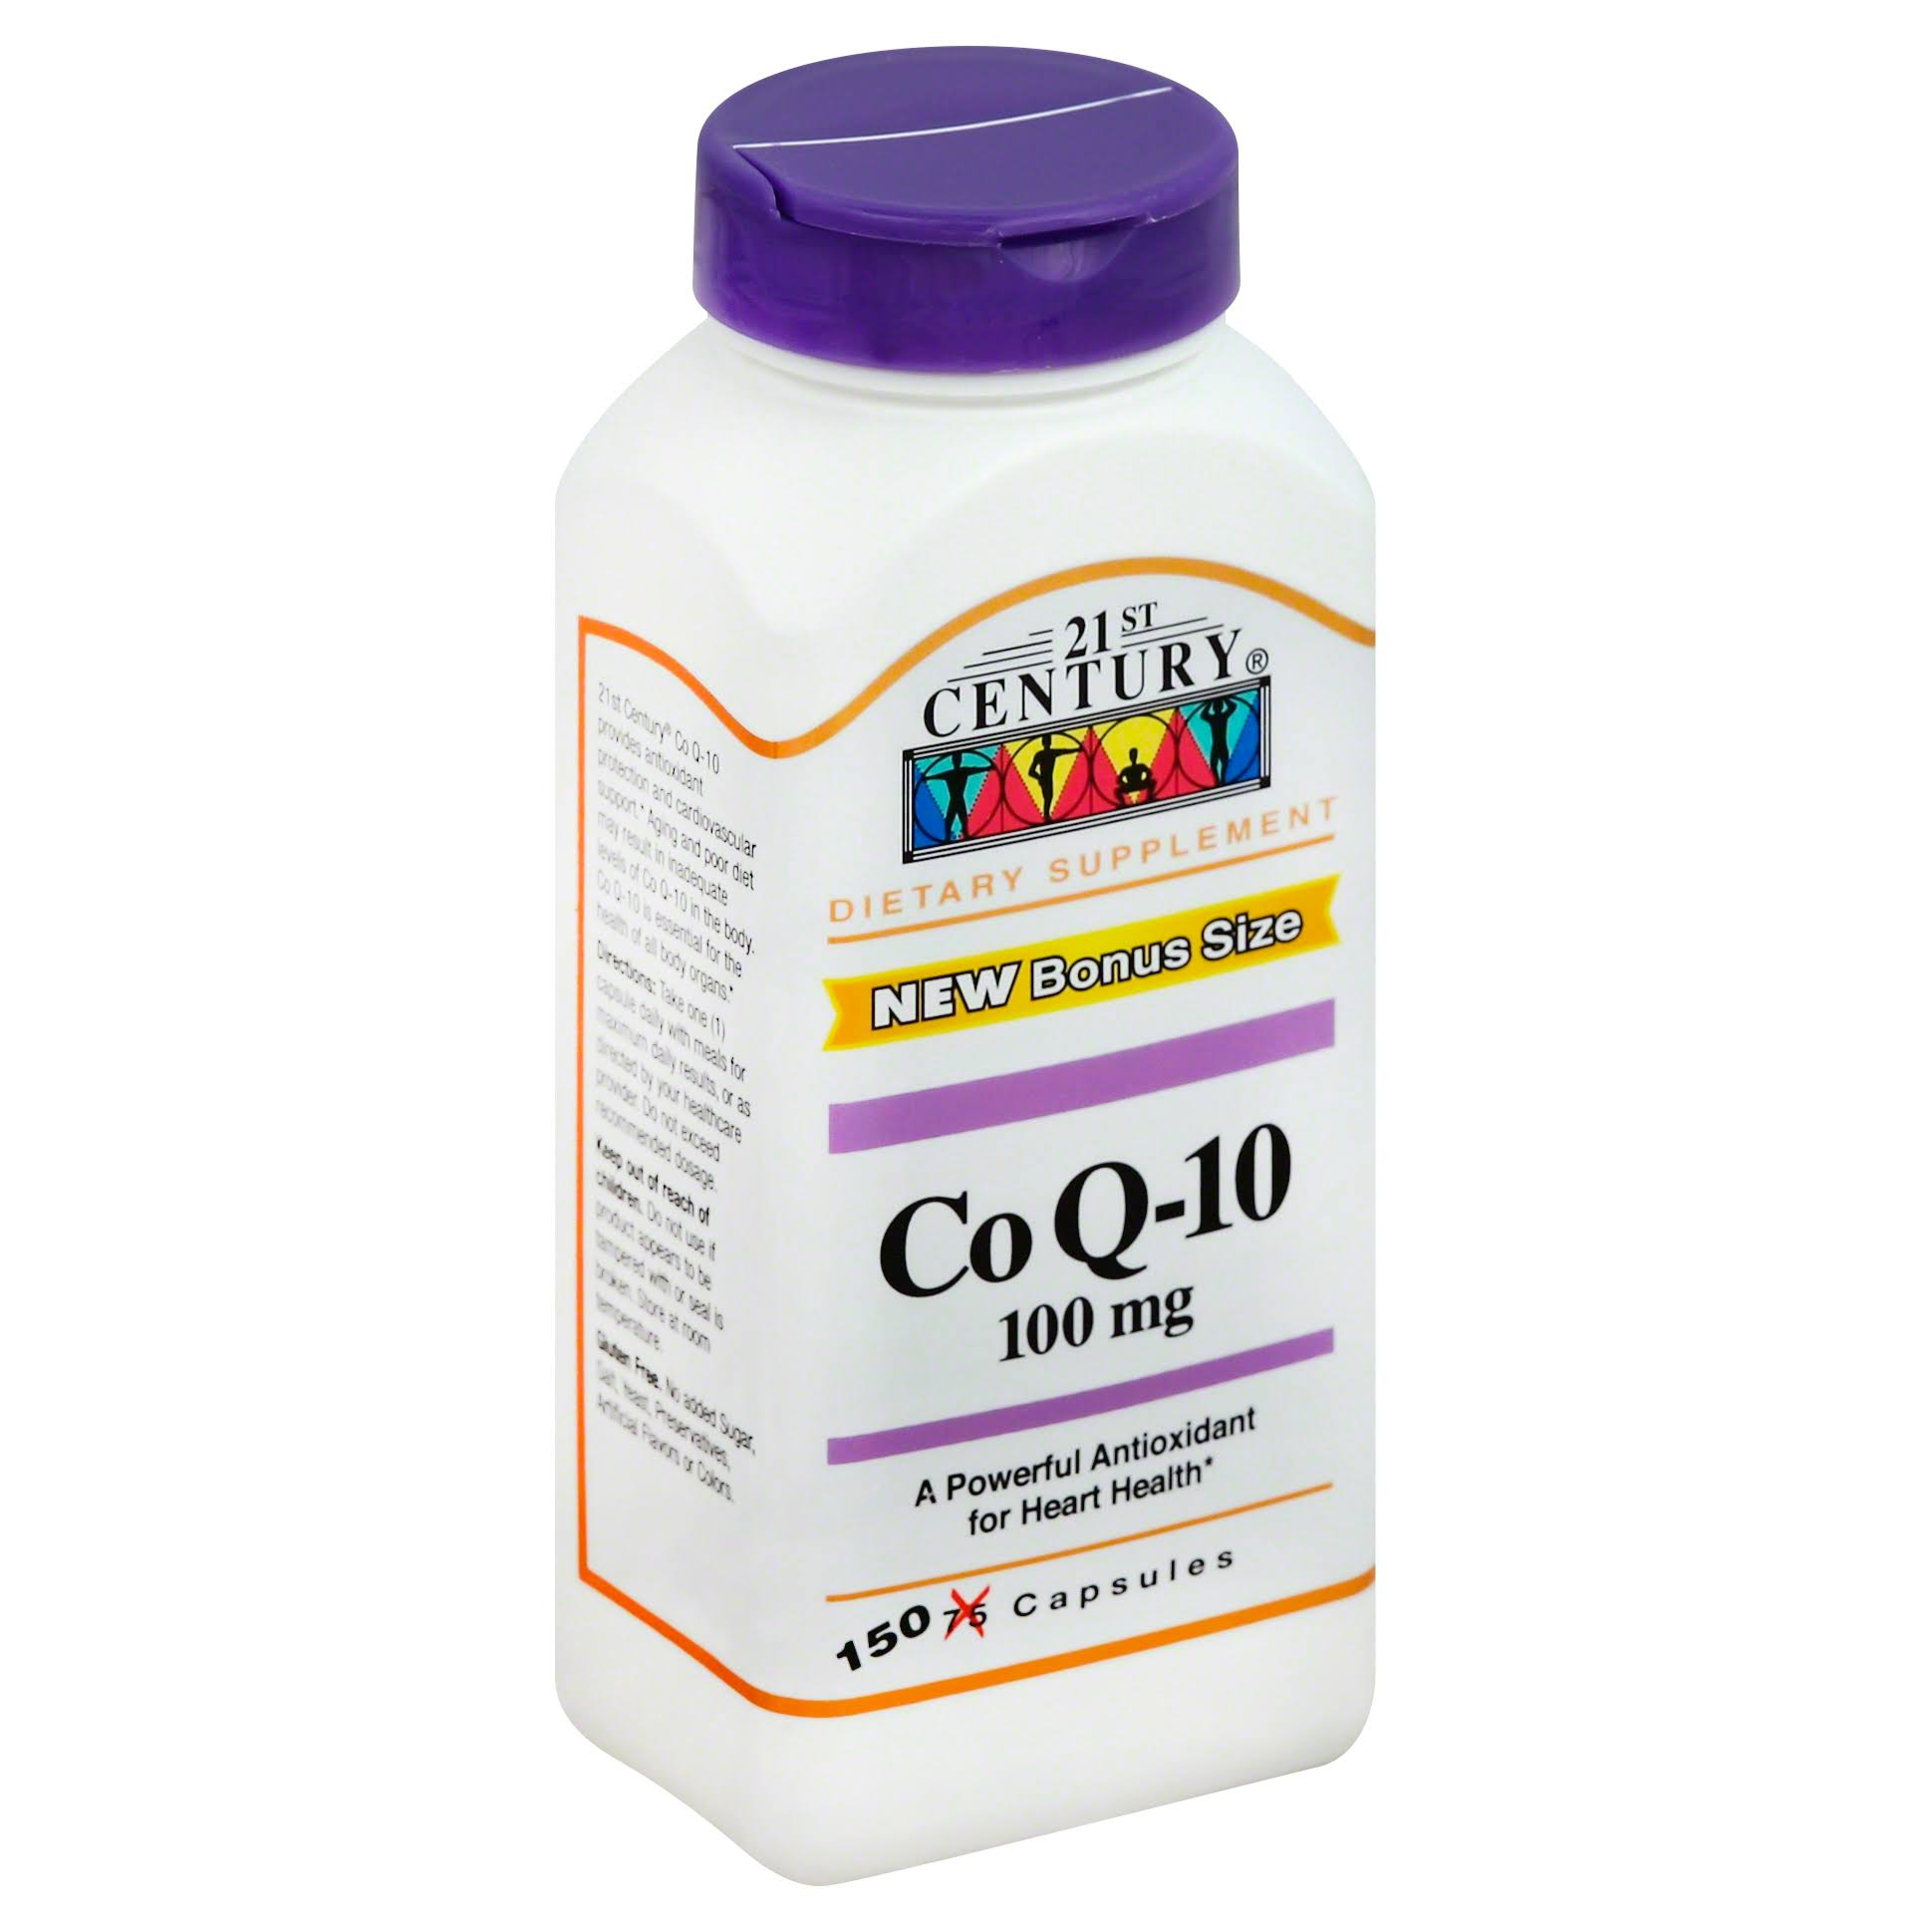 21st Century Co Q-10 Supplement - 100mg, 150 Capsules